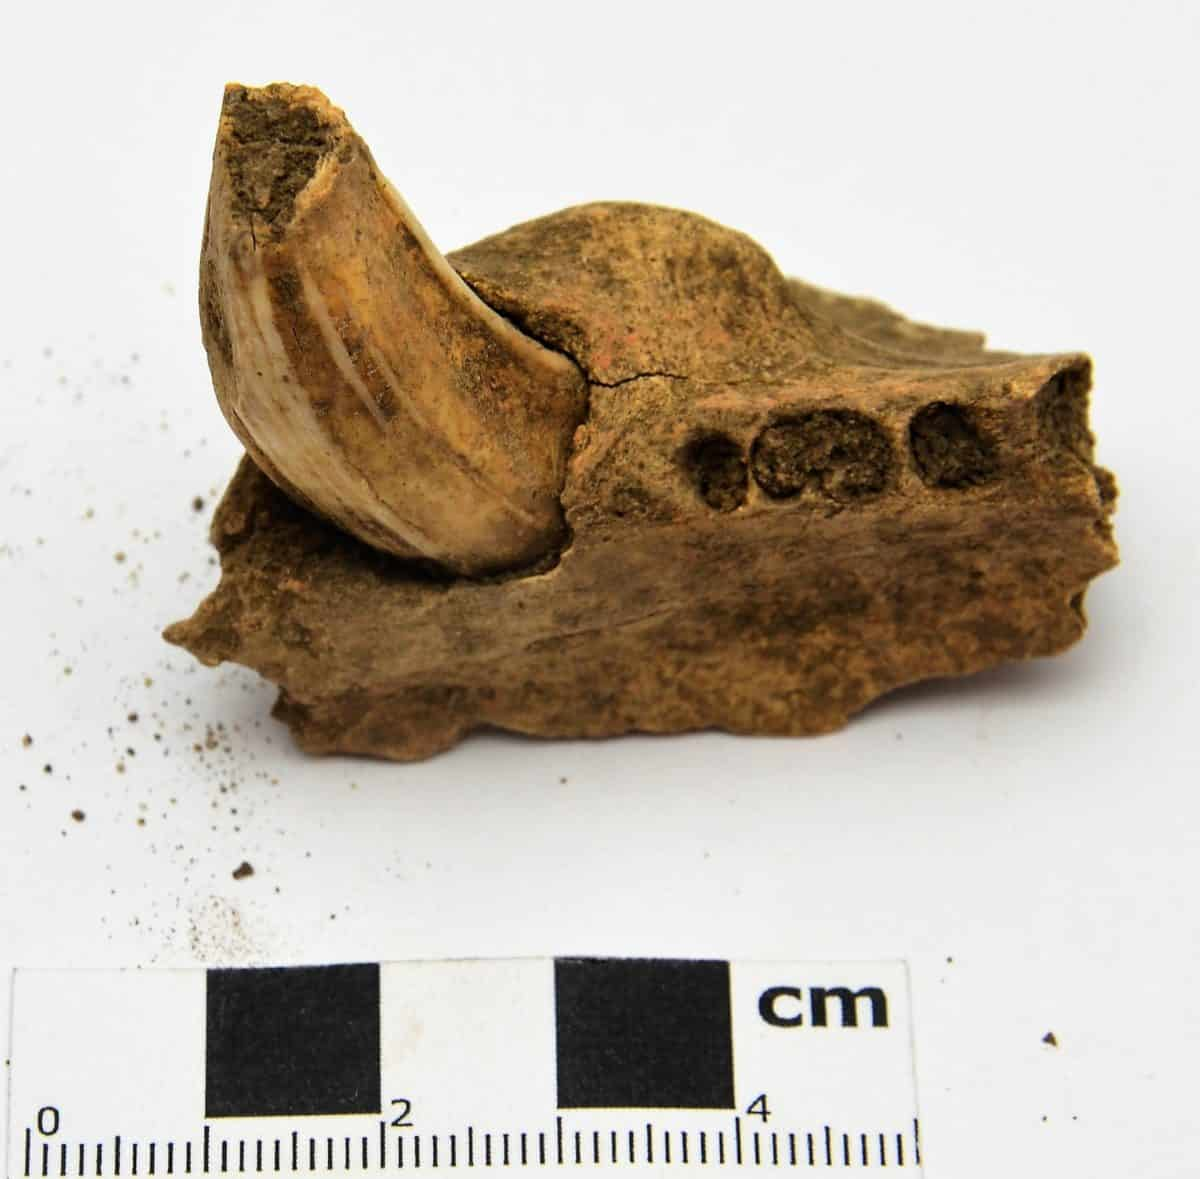 Anglo-Saxons 13 F2575b Animal remains - Boar tusk and partial jawbone